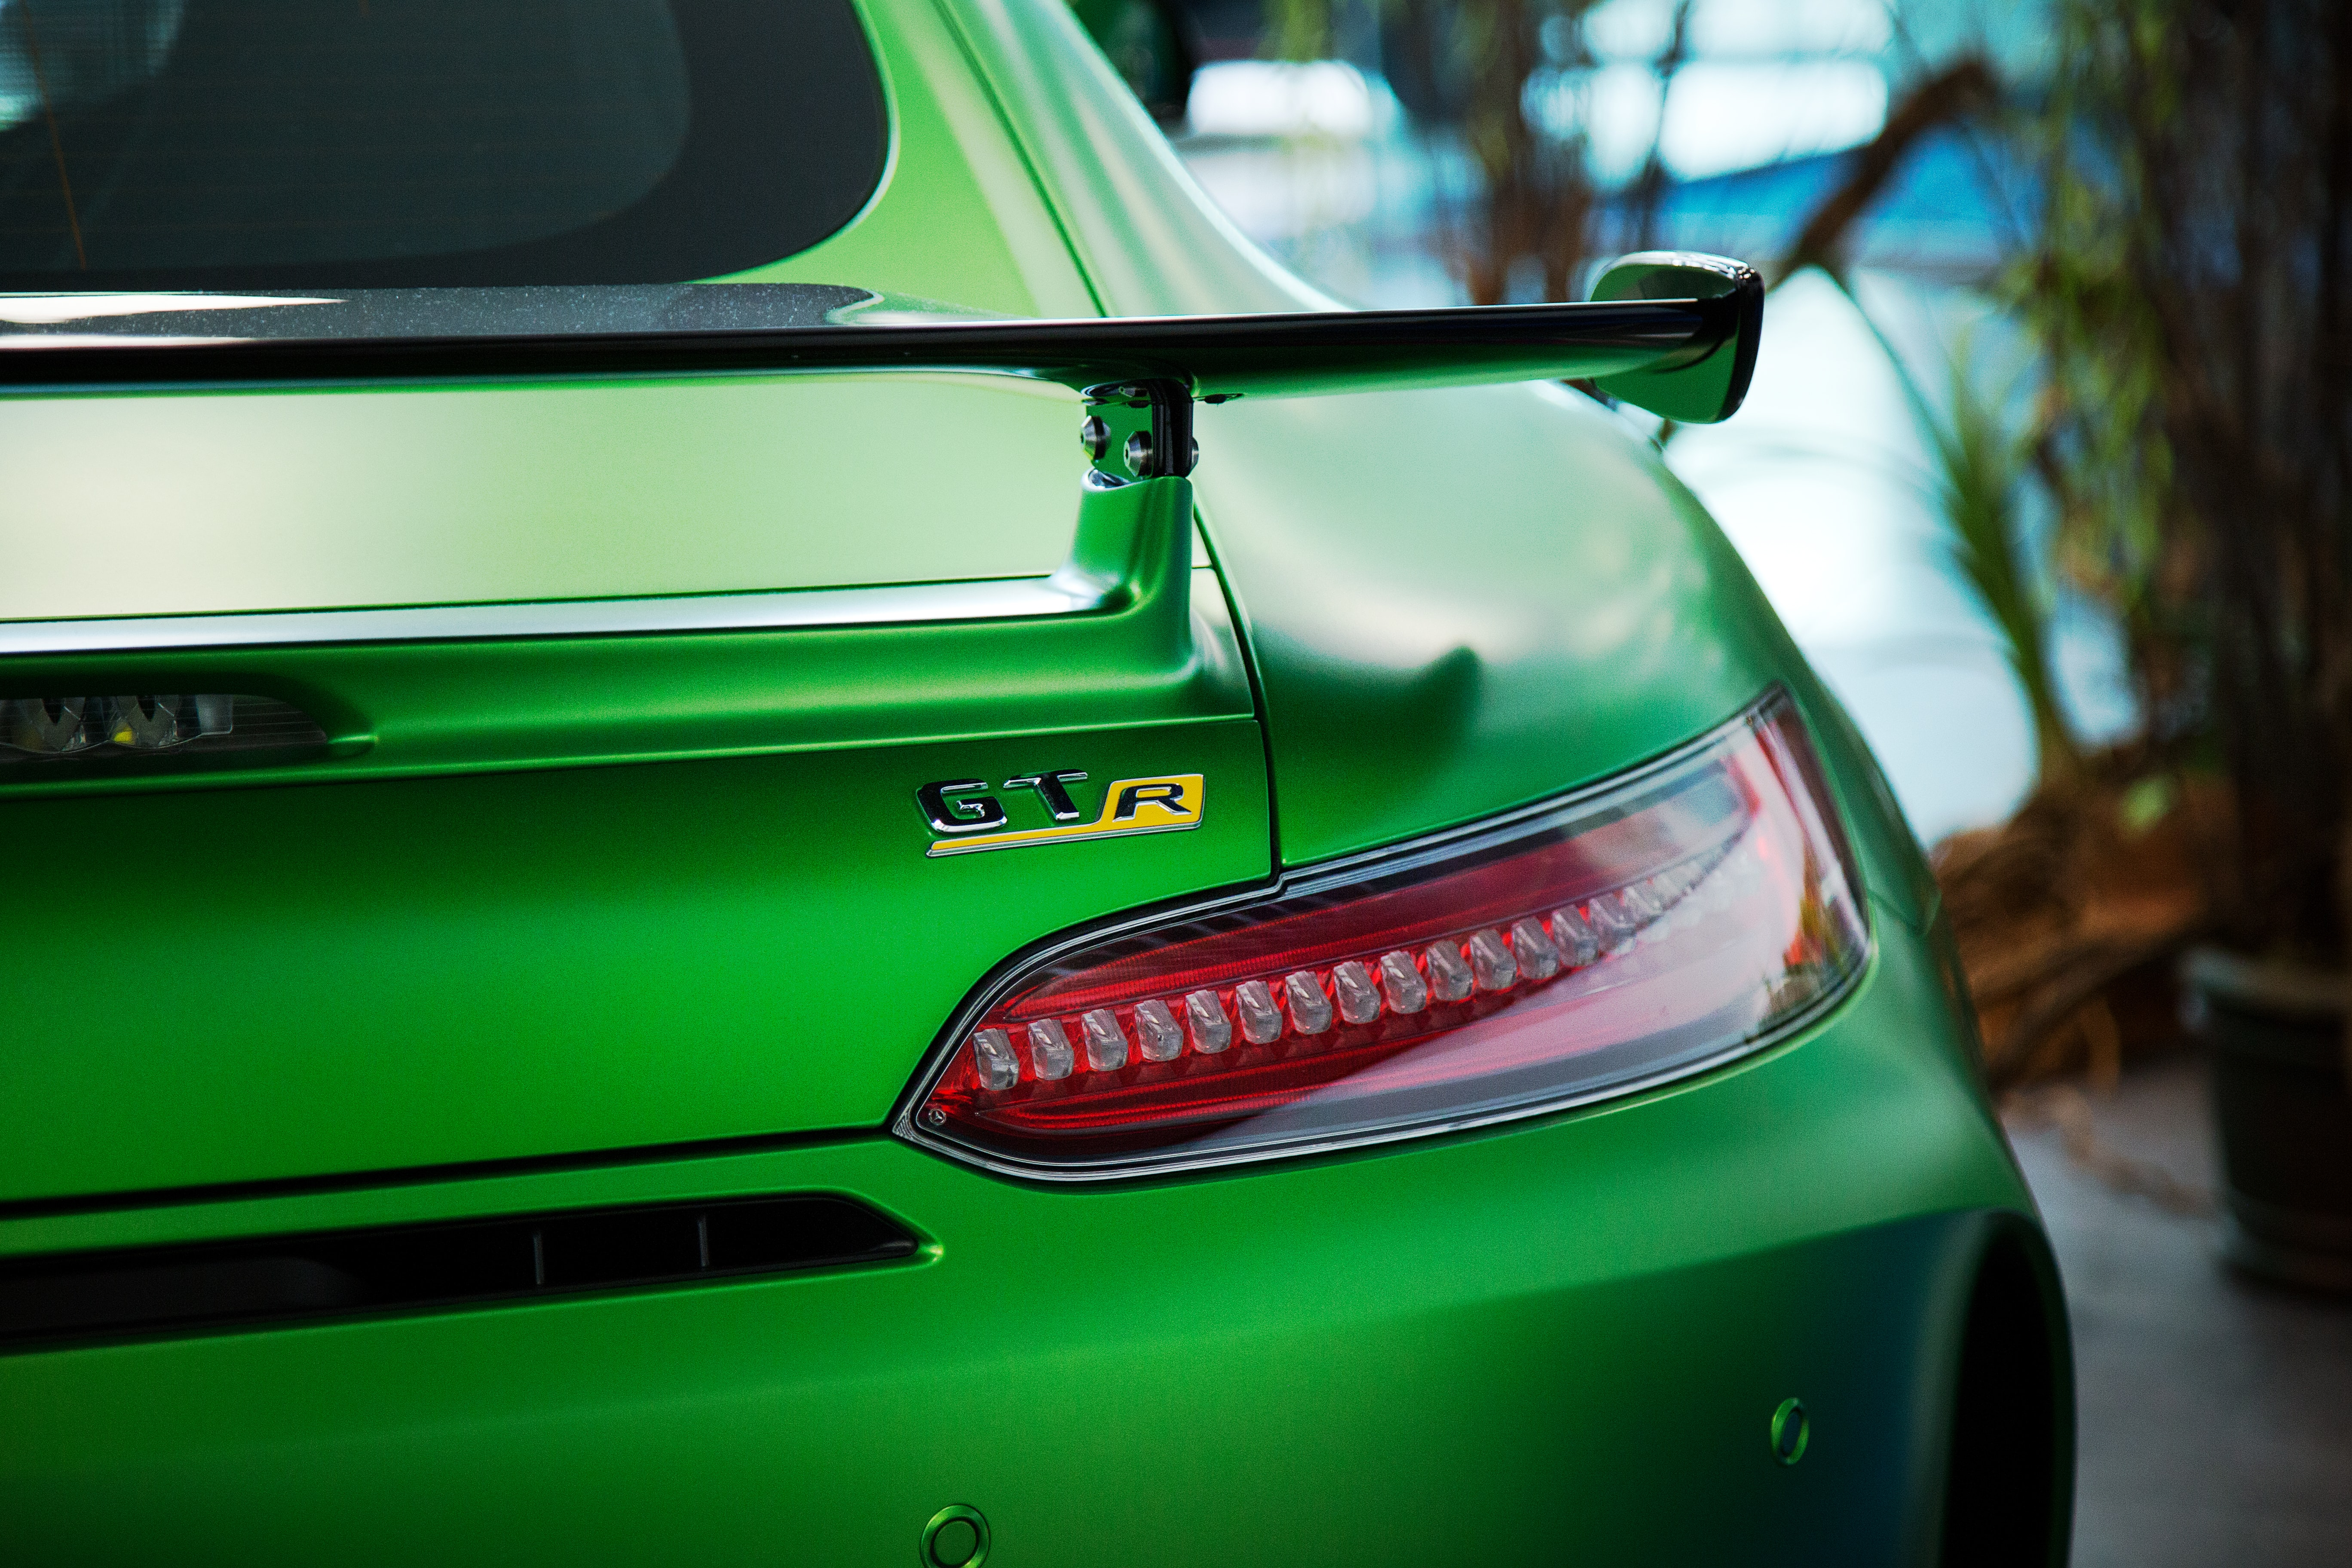 The passenger side taillight of a green car.